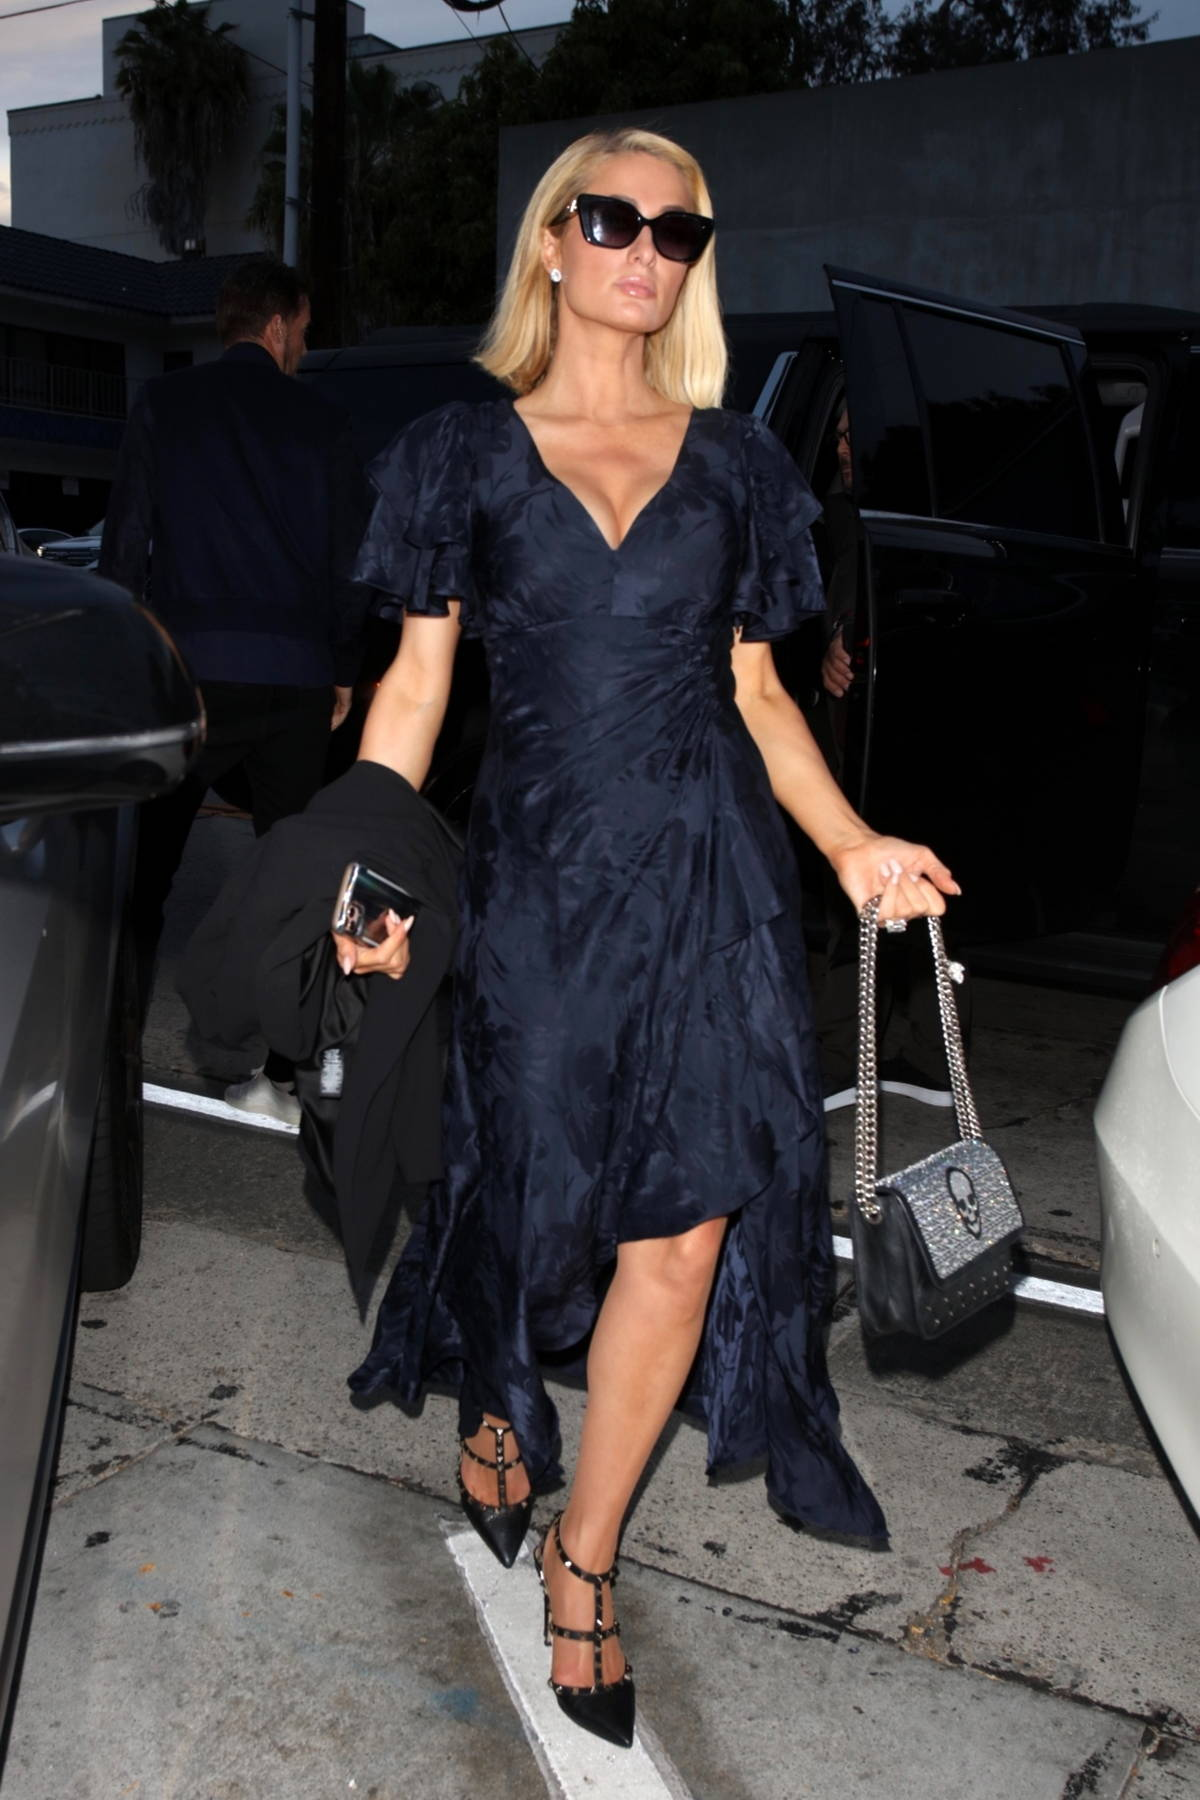 Paris Hilton wears a navy blue dress for a family dinner at Craig's Restaurant in West Hollywood, California